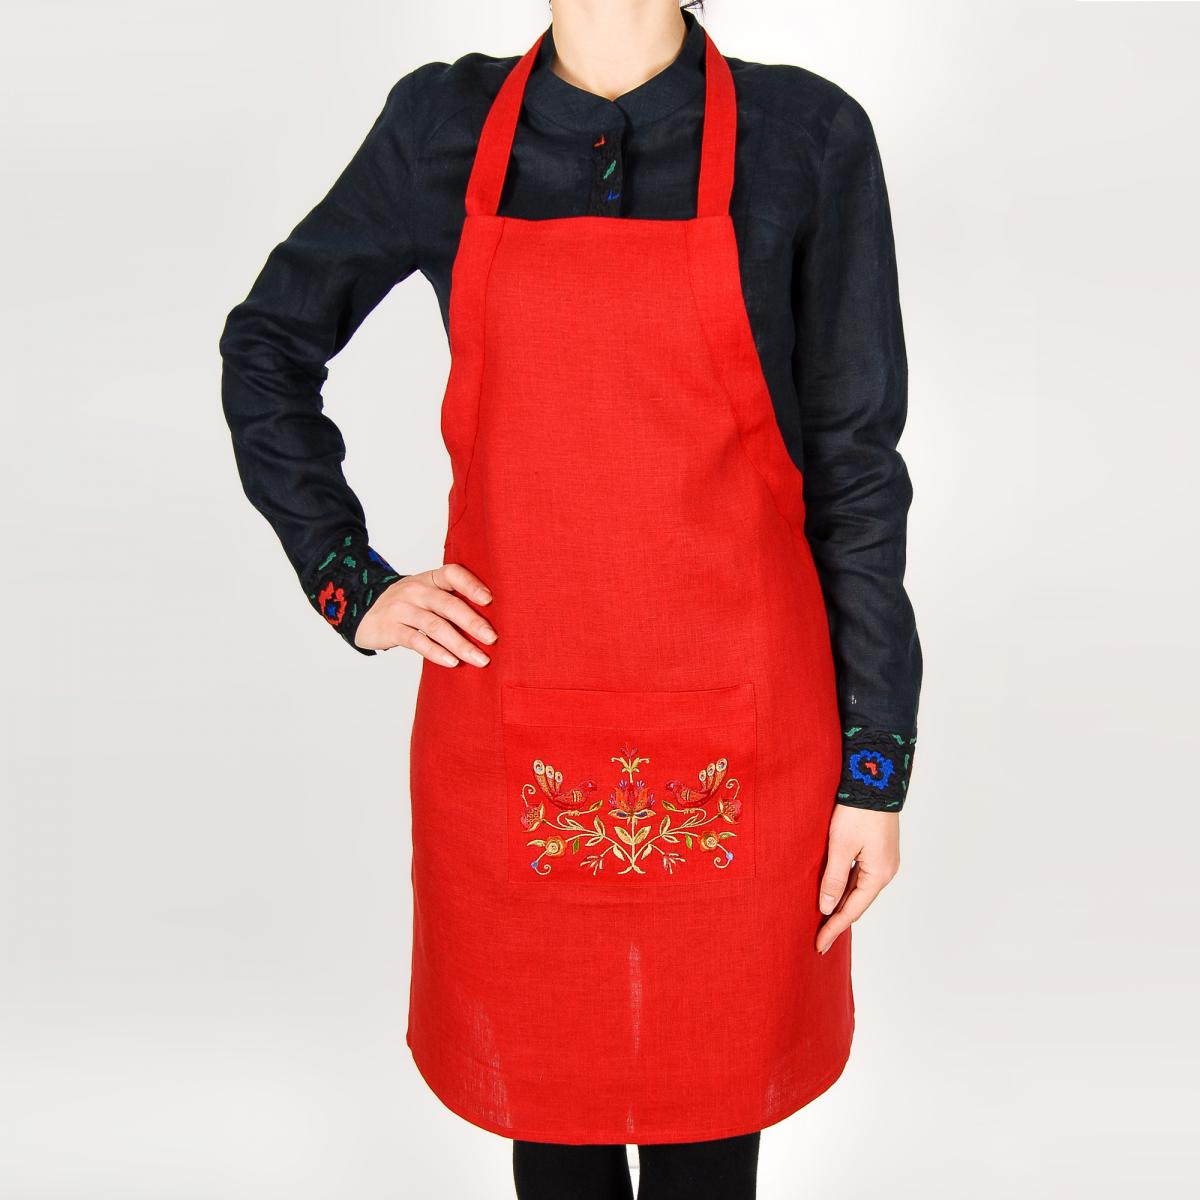 Apron for your kitchen with embroidery. Photo №2. | Narodnyi dim Ukraine